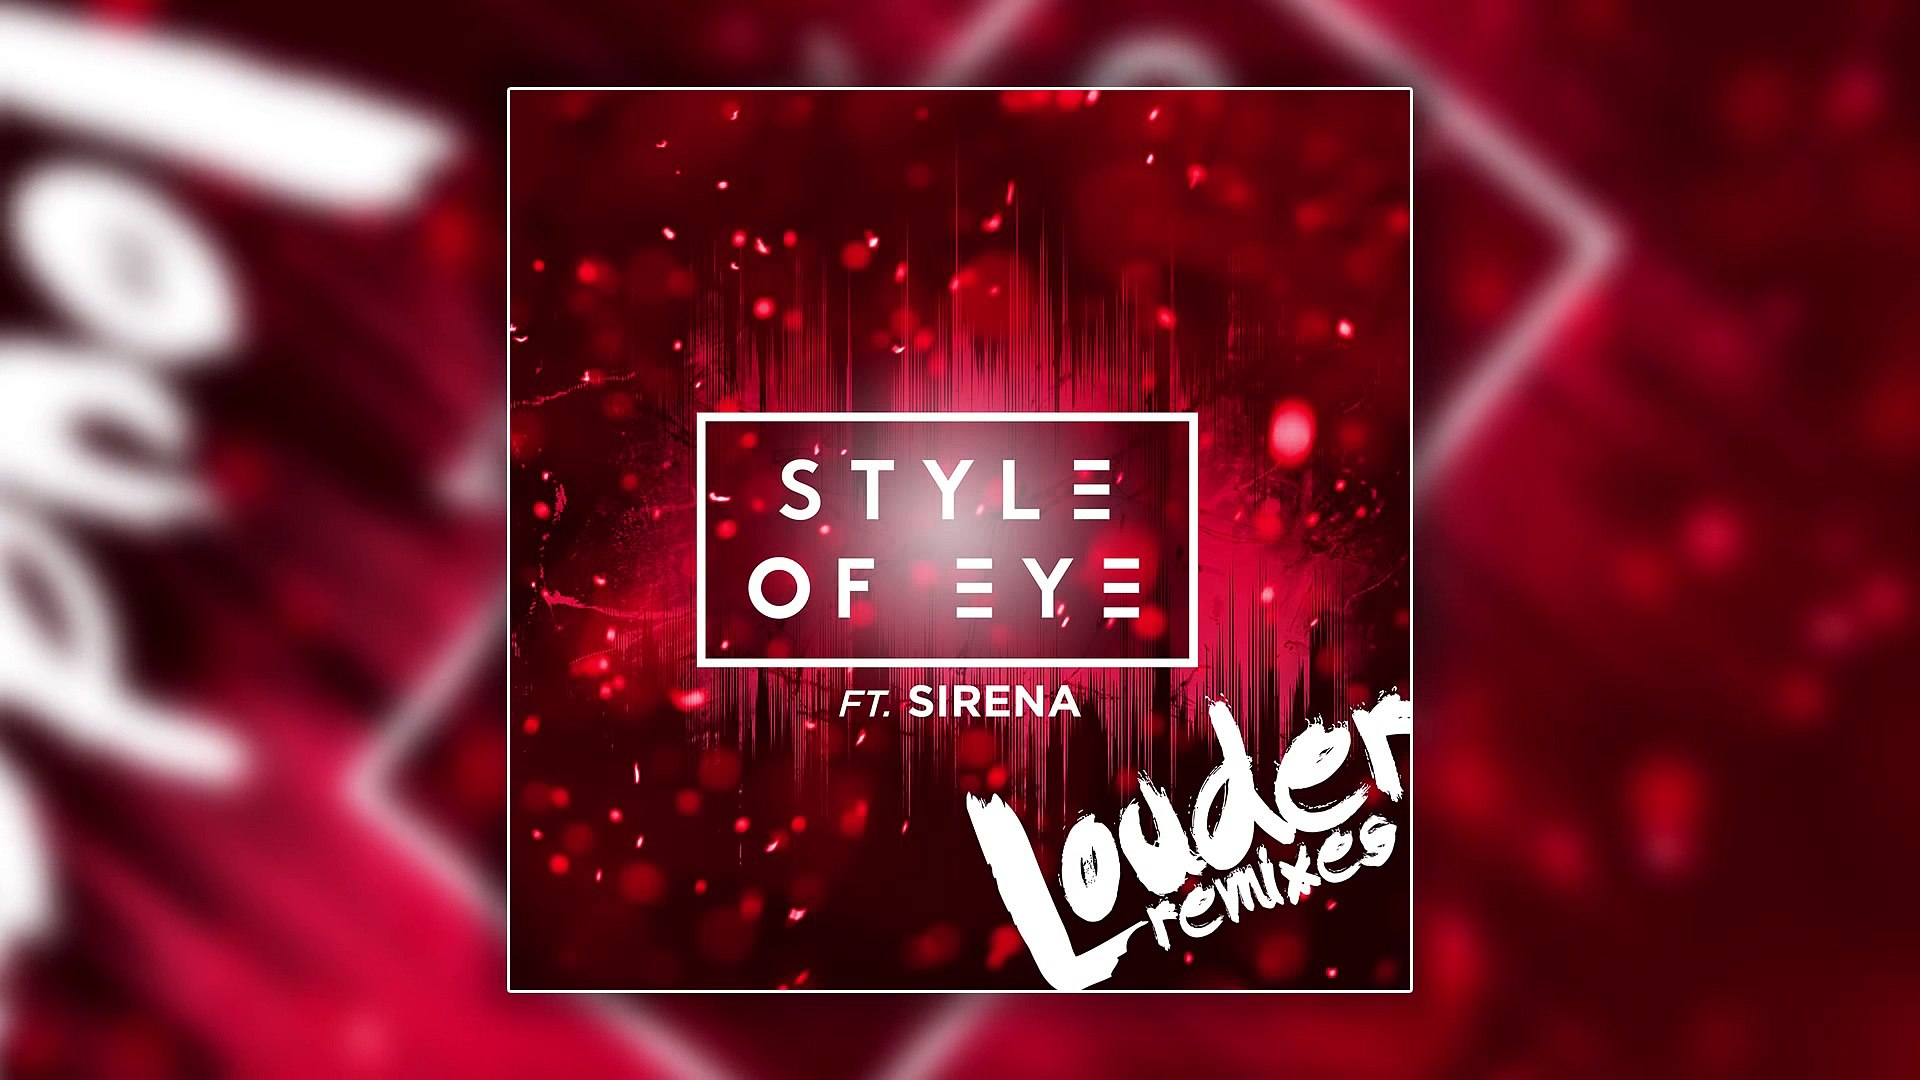 Style of Eye feat. Sirena - Louder (Botnek's Weirder Remix) [Cover Art]